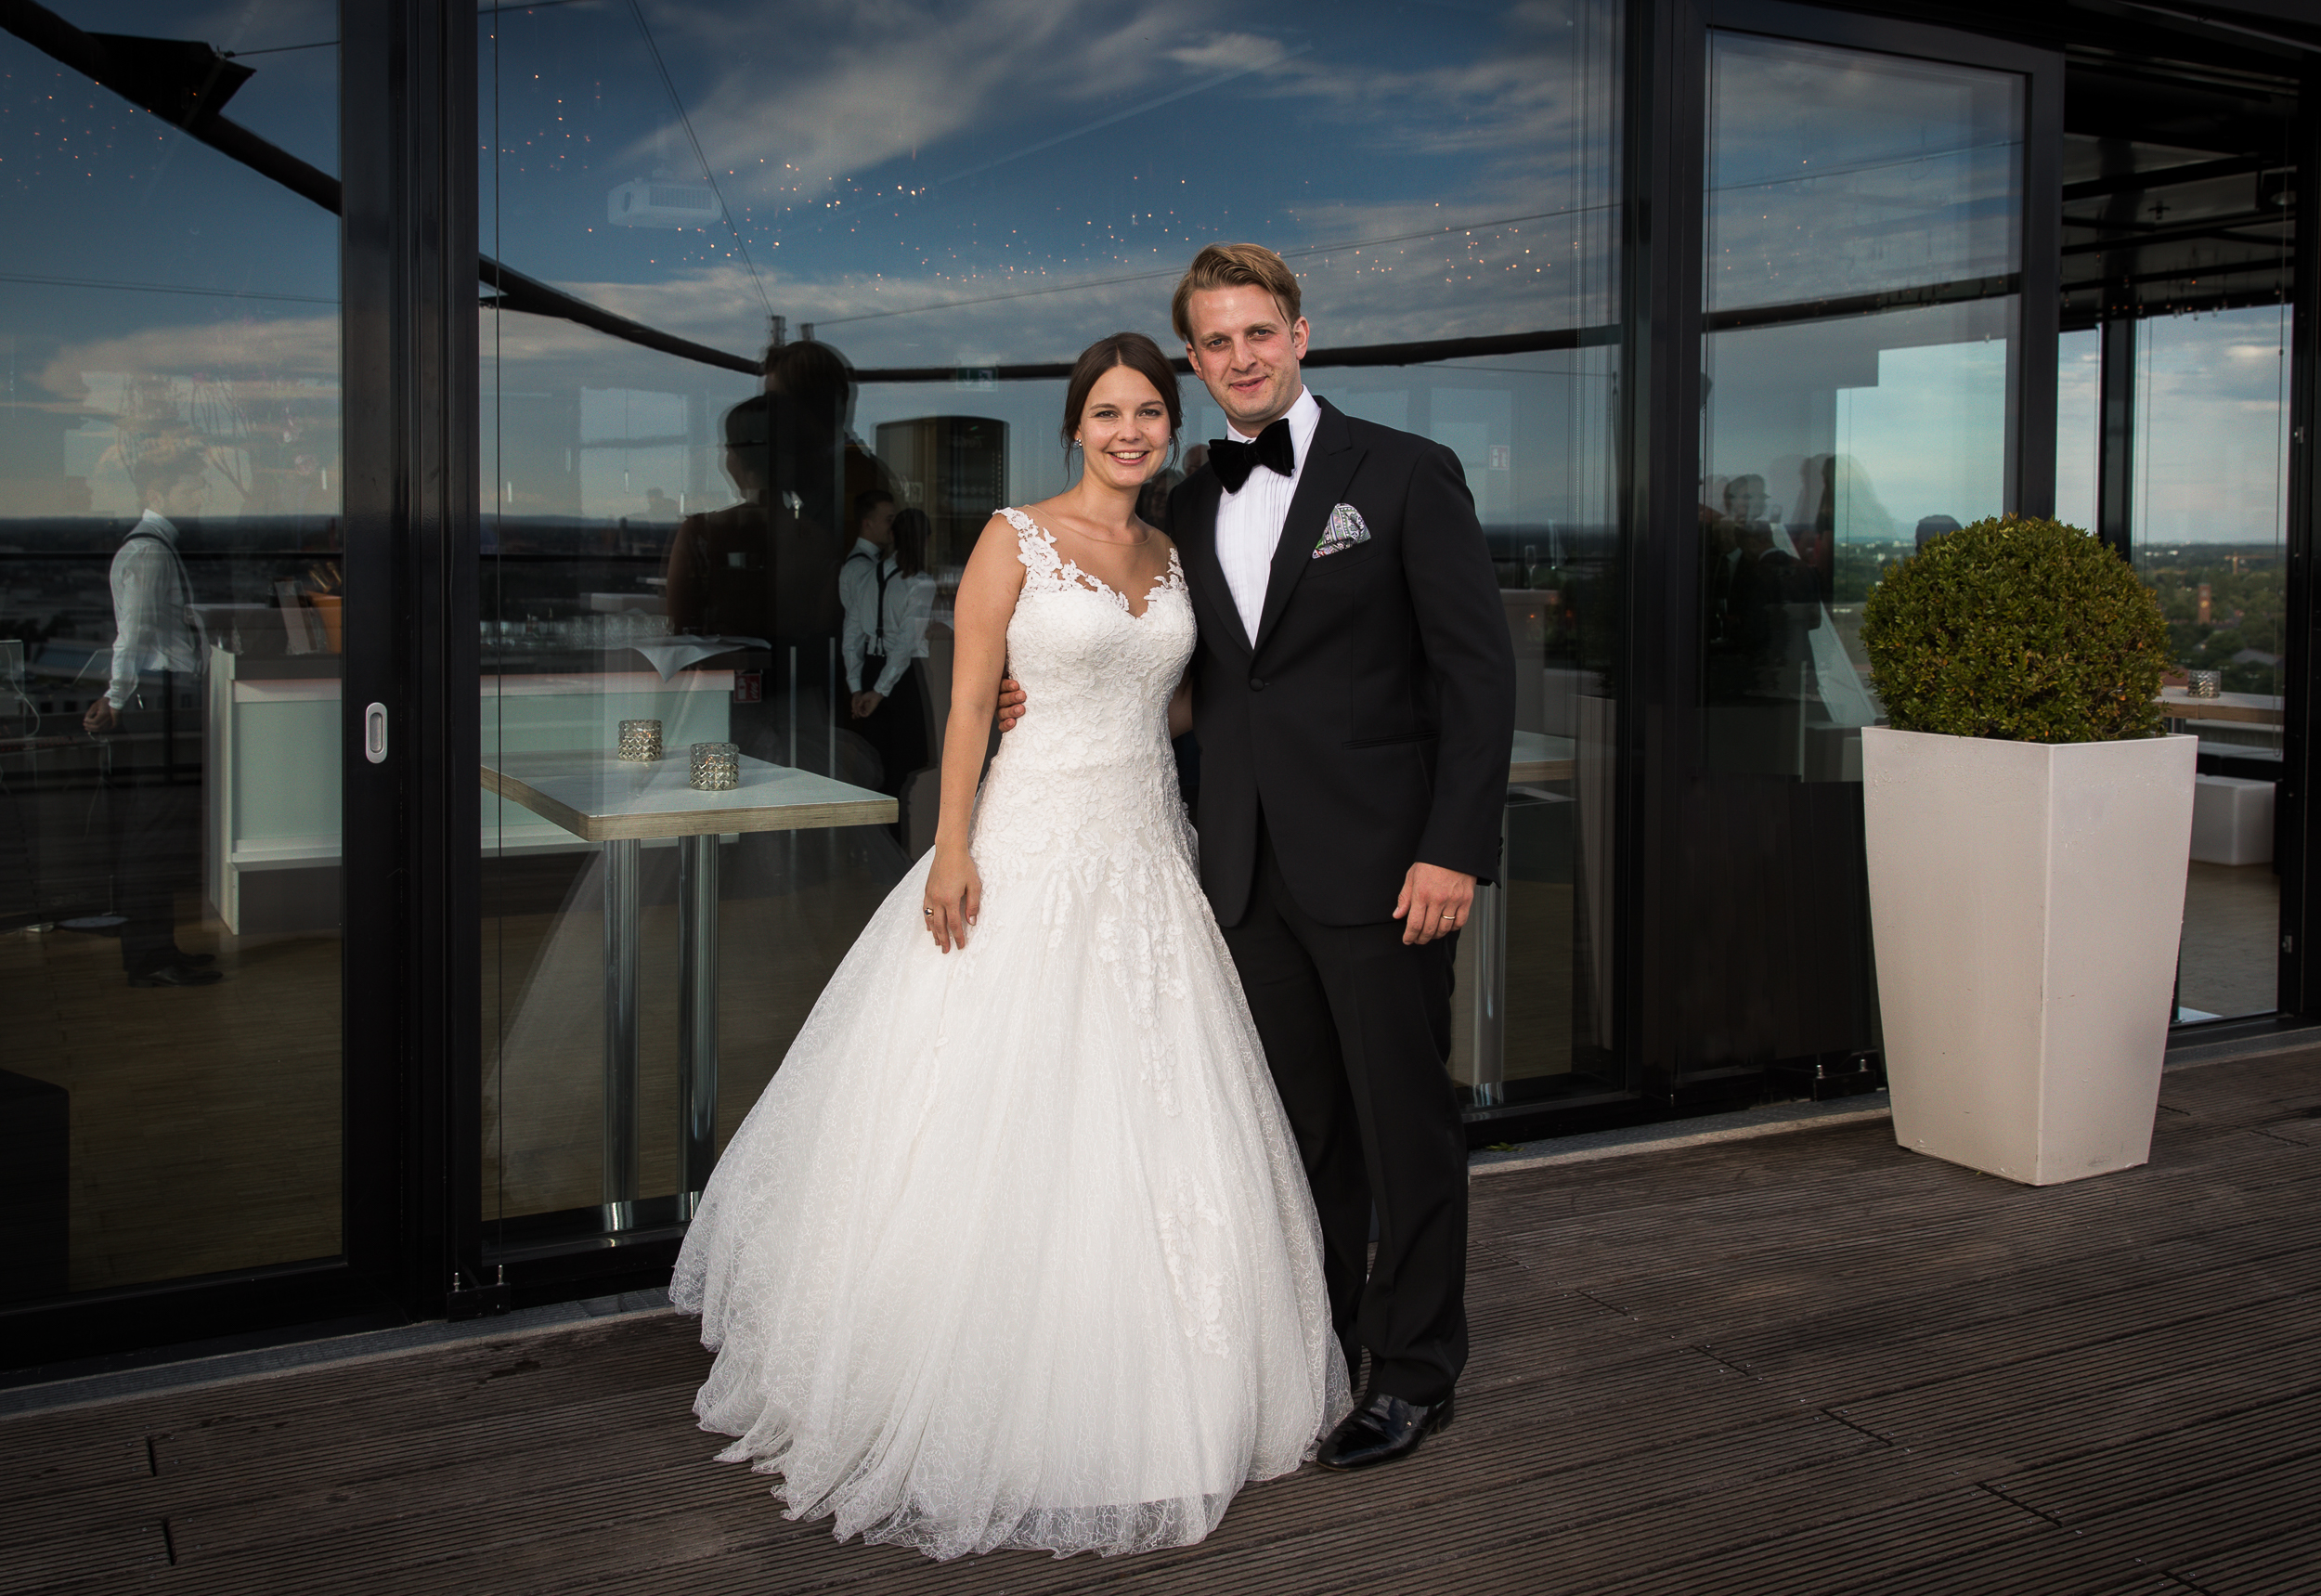 Gregg_Thorne_Wedding_Photographer_Munich_079.jpg